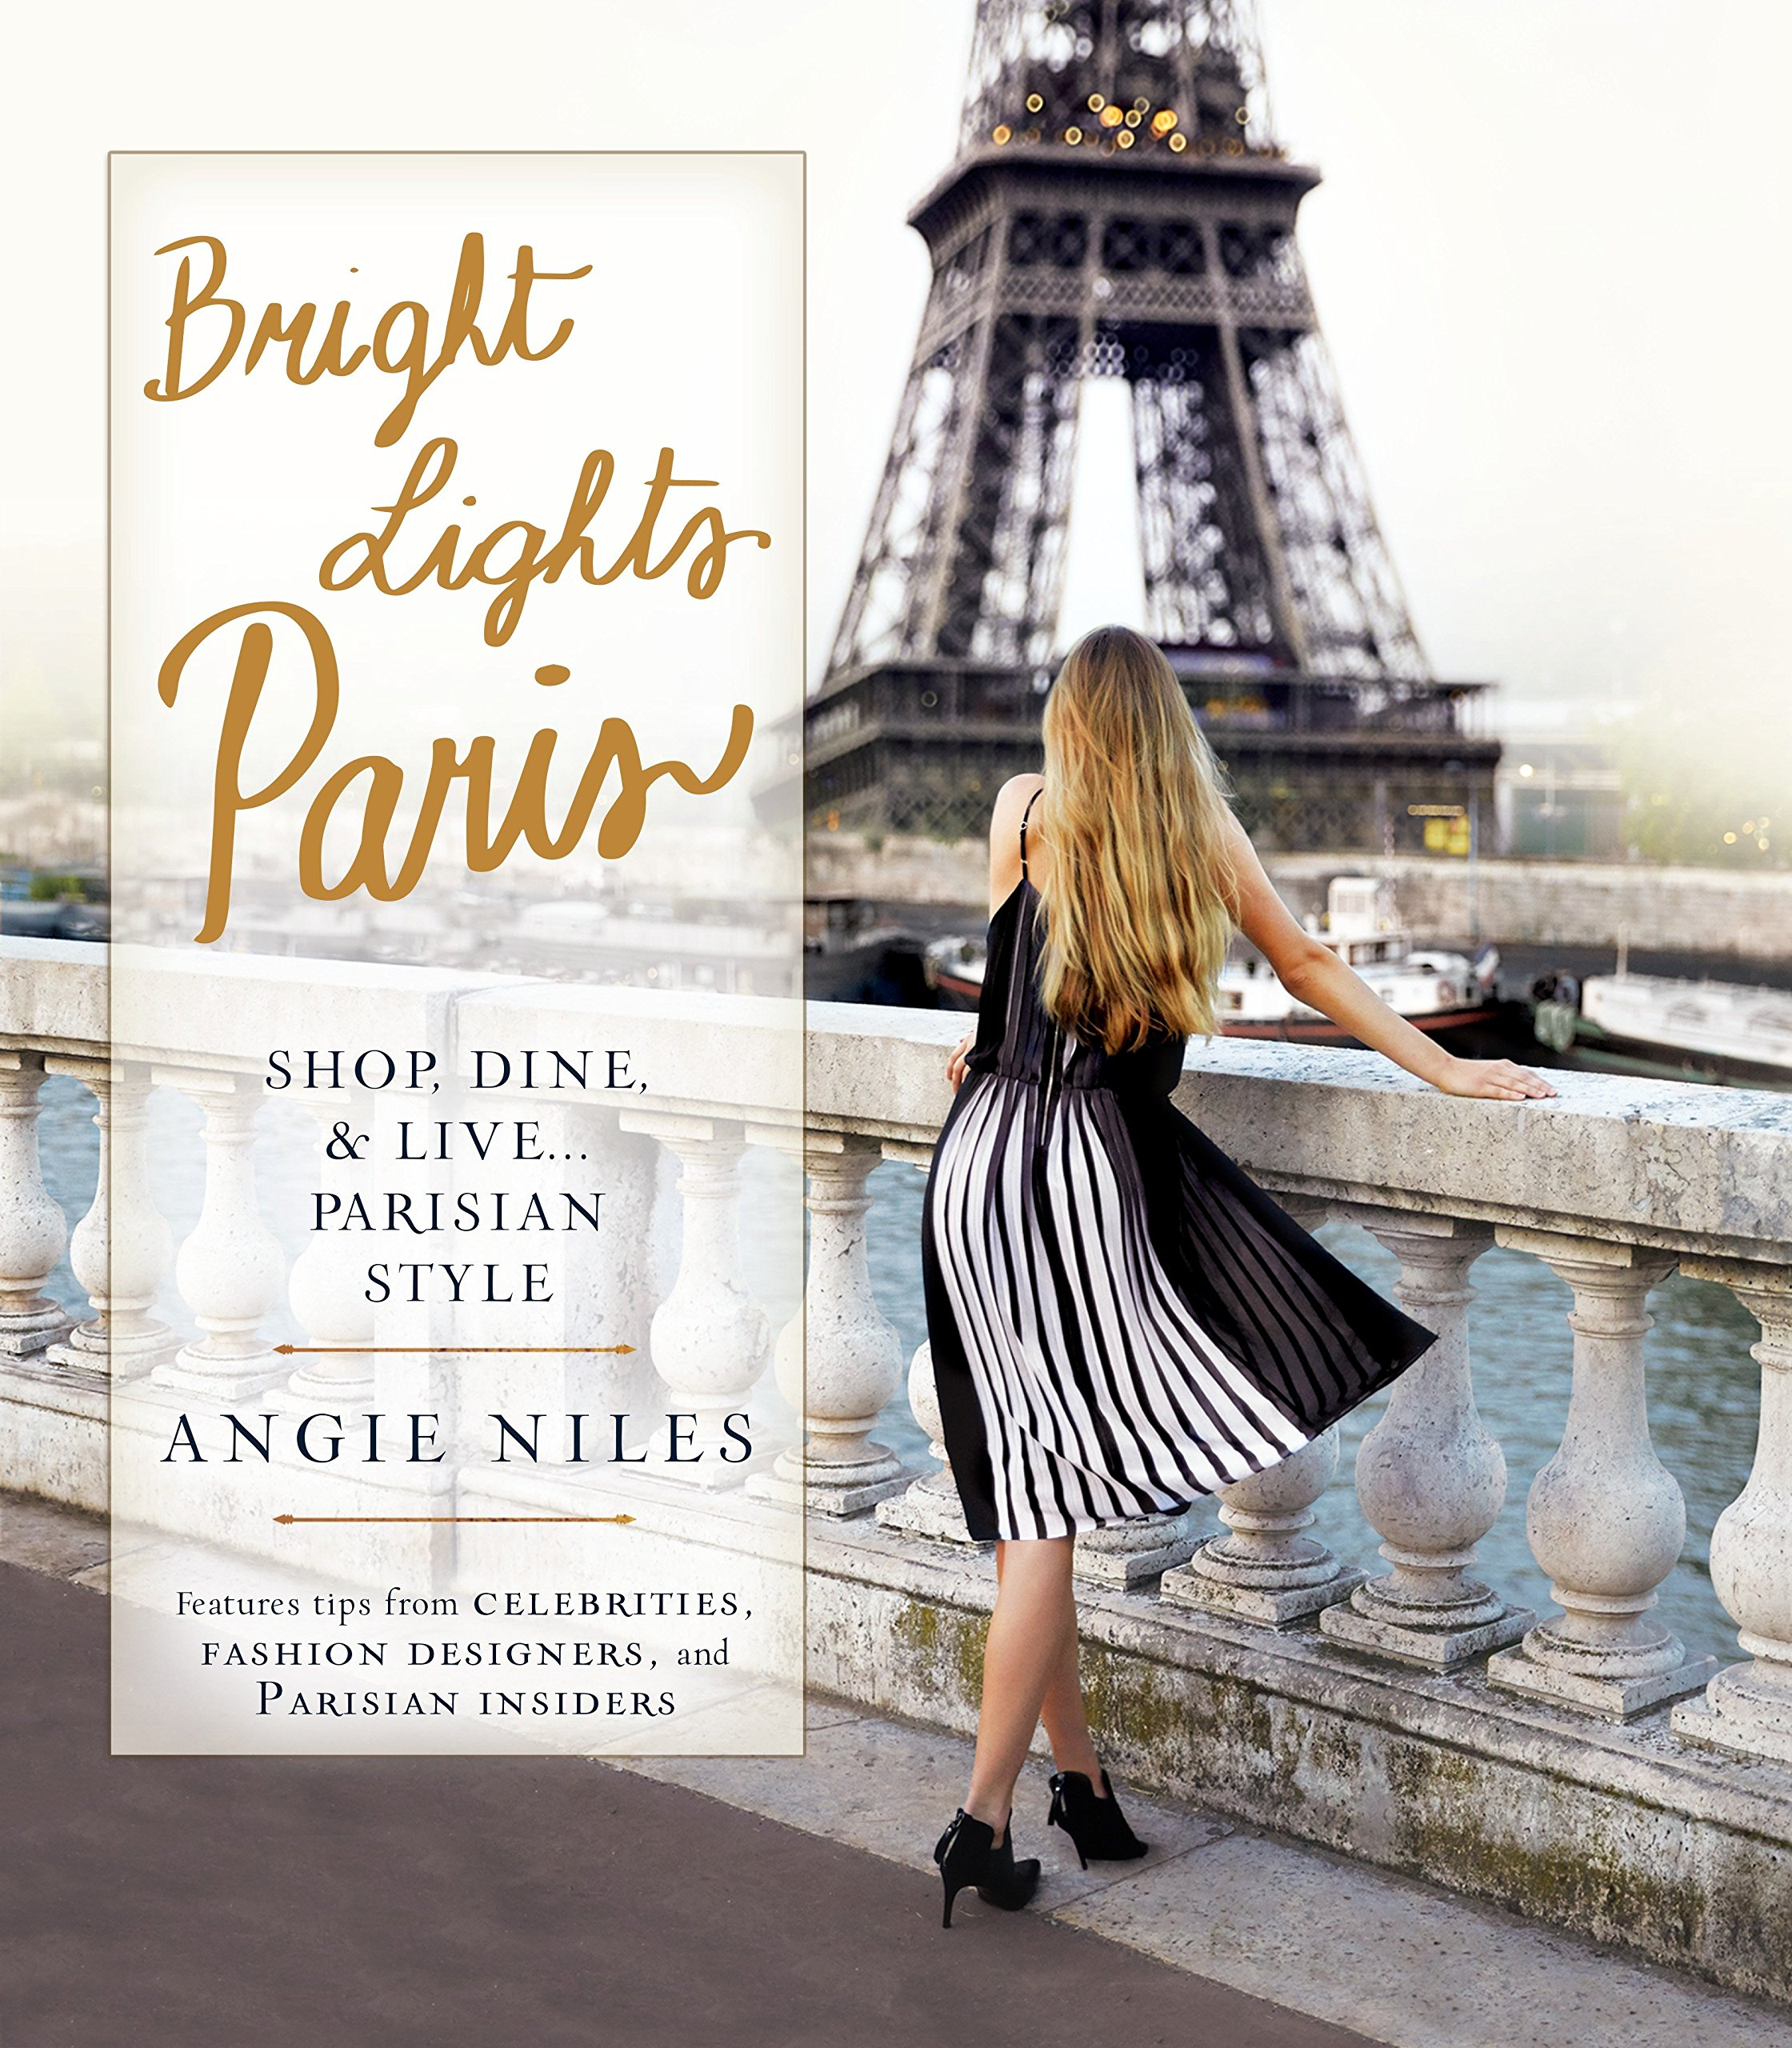 Bright Lights Paris: Shop, Dine & Live...Parisian Style: Niles, Angie:  9780425280706: Amazon.com: Books